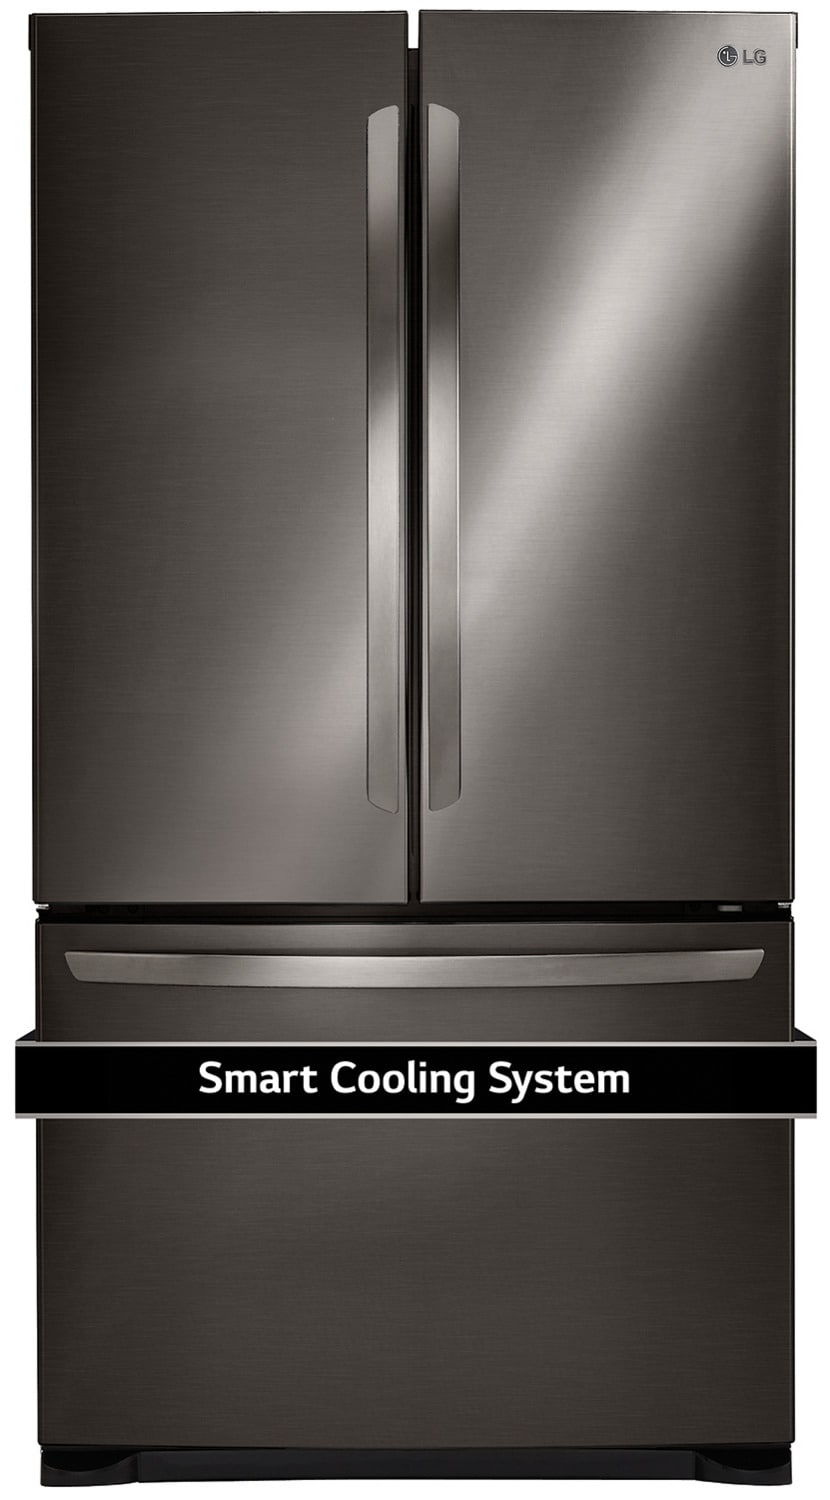 LG Black Stainless Steel French Door Refrigerator (21.8 Cu. Ft) -LFNS22520D